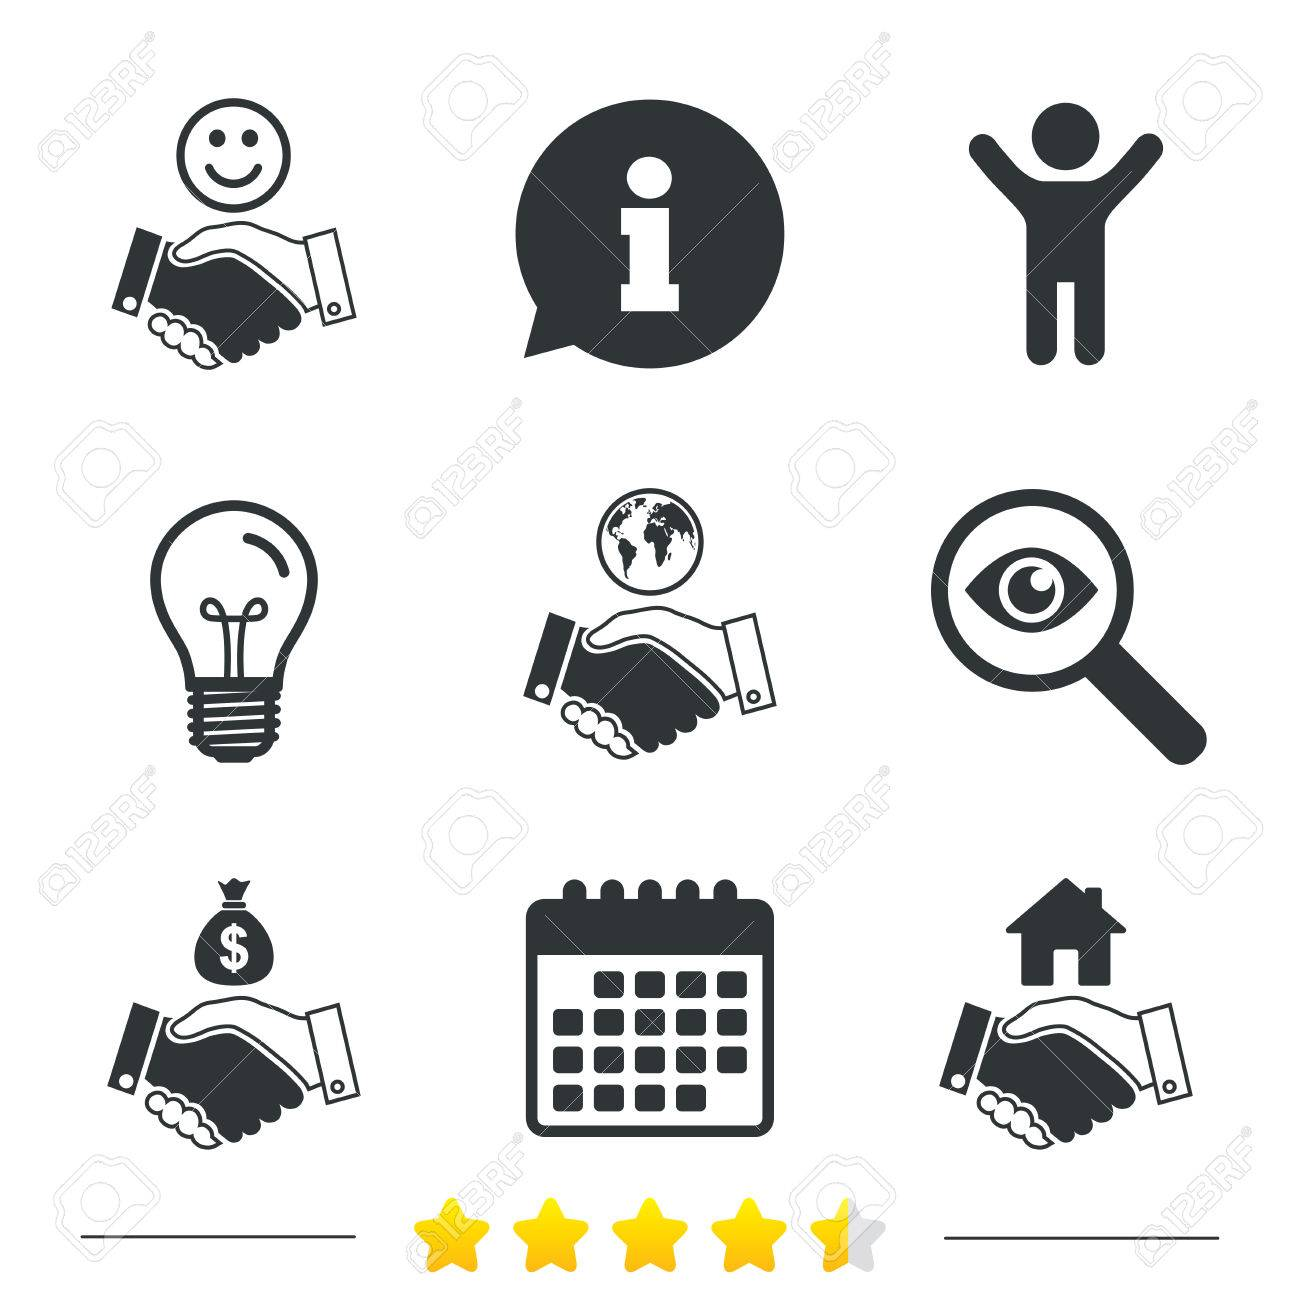 Handshake icons world smile happy face and house building symbol world smile happy face and house building symbol dollar cash money biocorpaavc Image collections